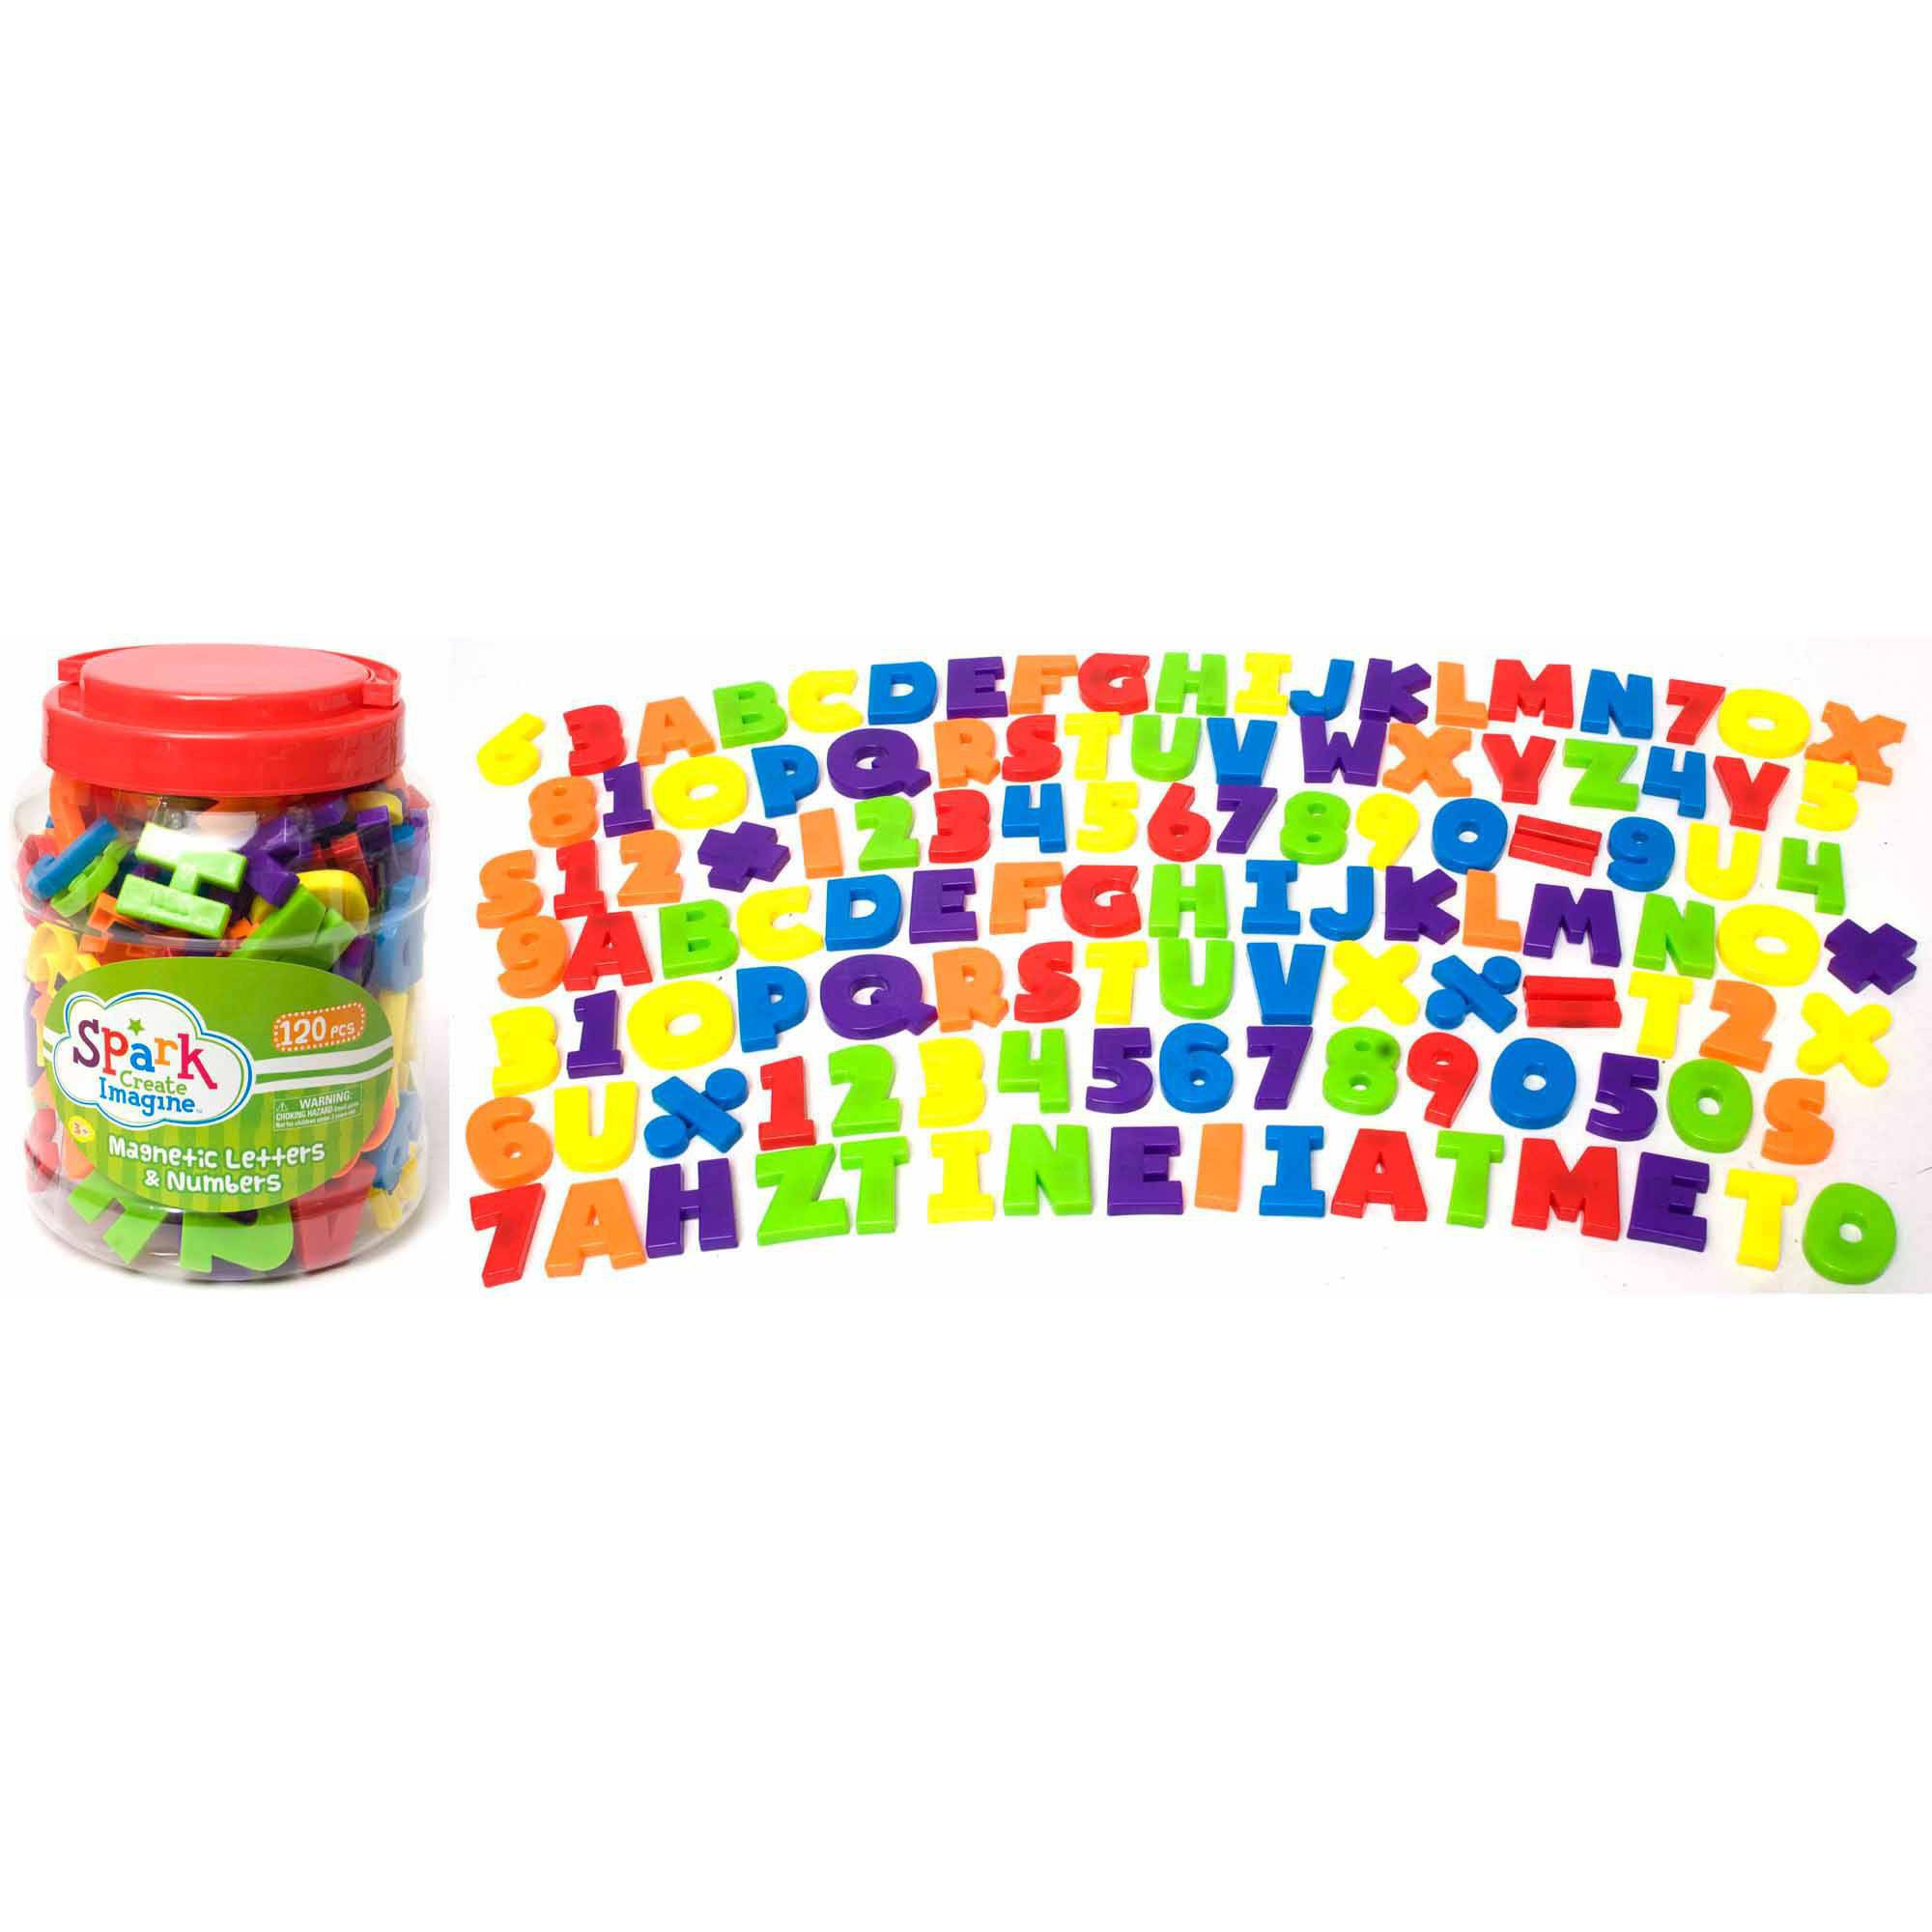 120-Piece Magnetic Letters and Numbers Set